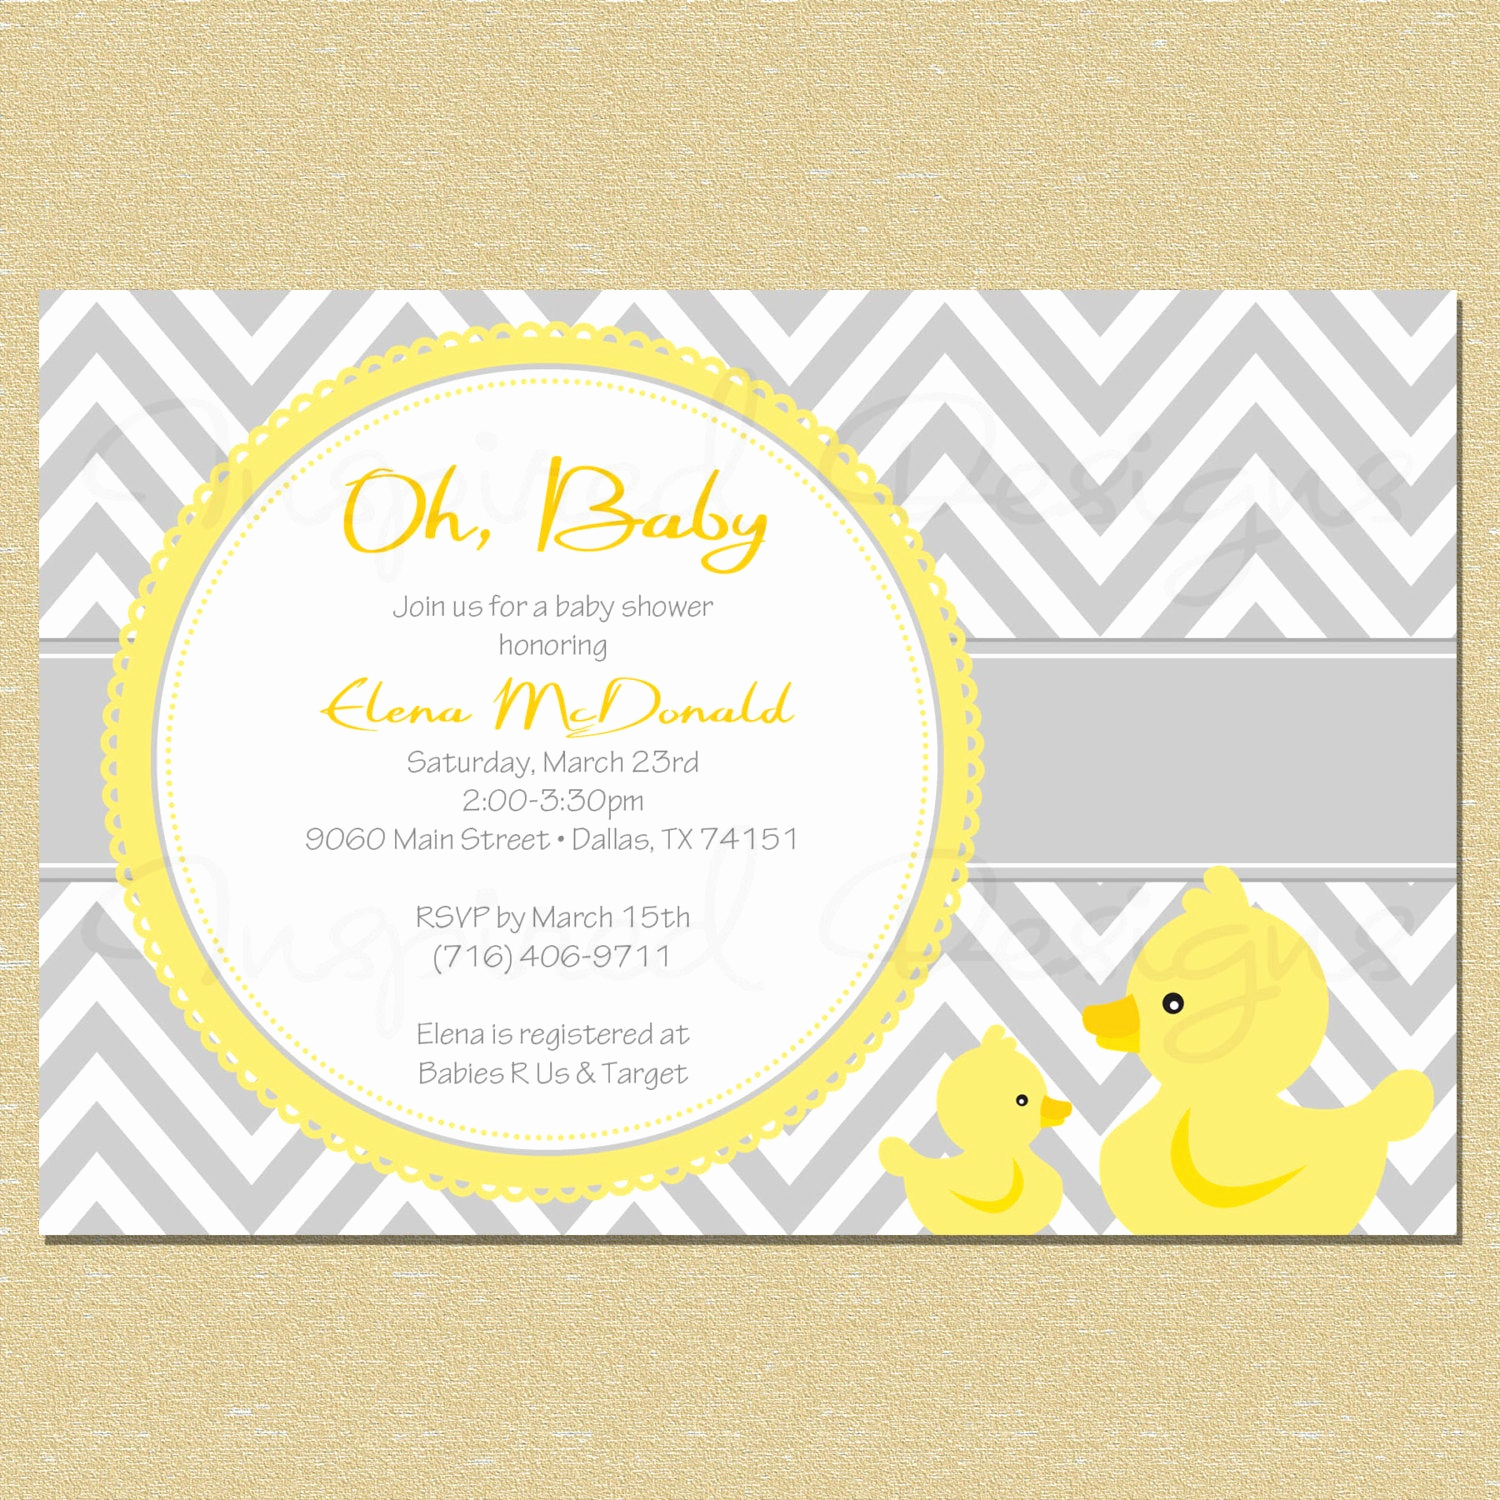 Rubber Duck Baby Shower Invitation Best Of Chevron Rubber Duck Baby Shower Invitation by